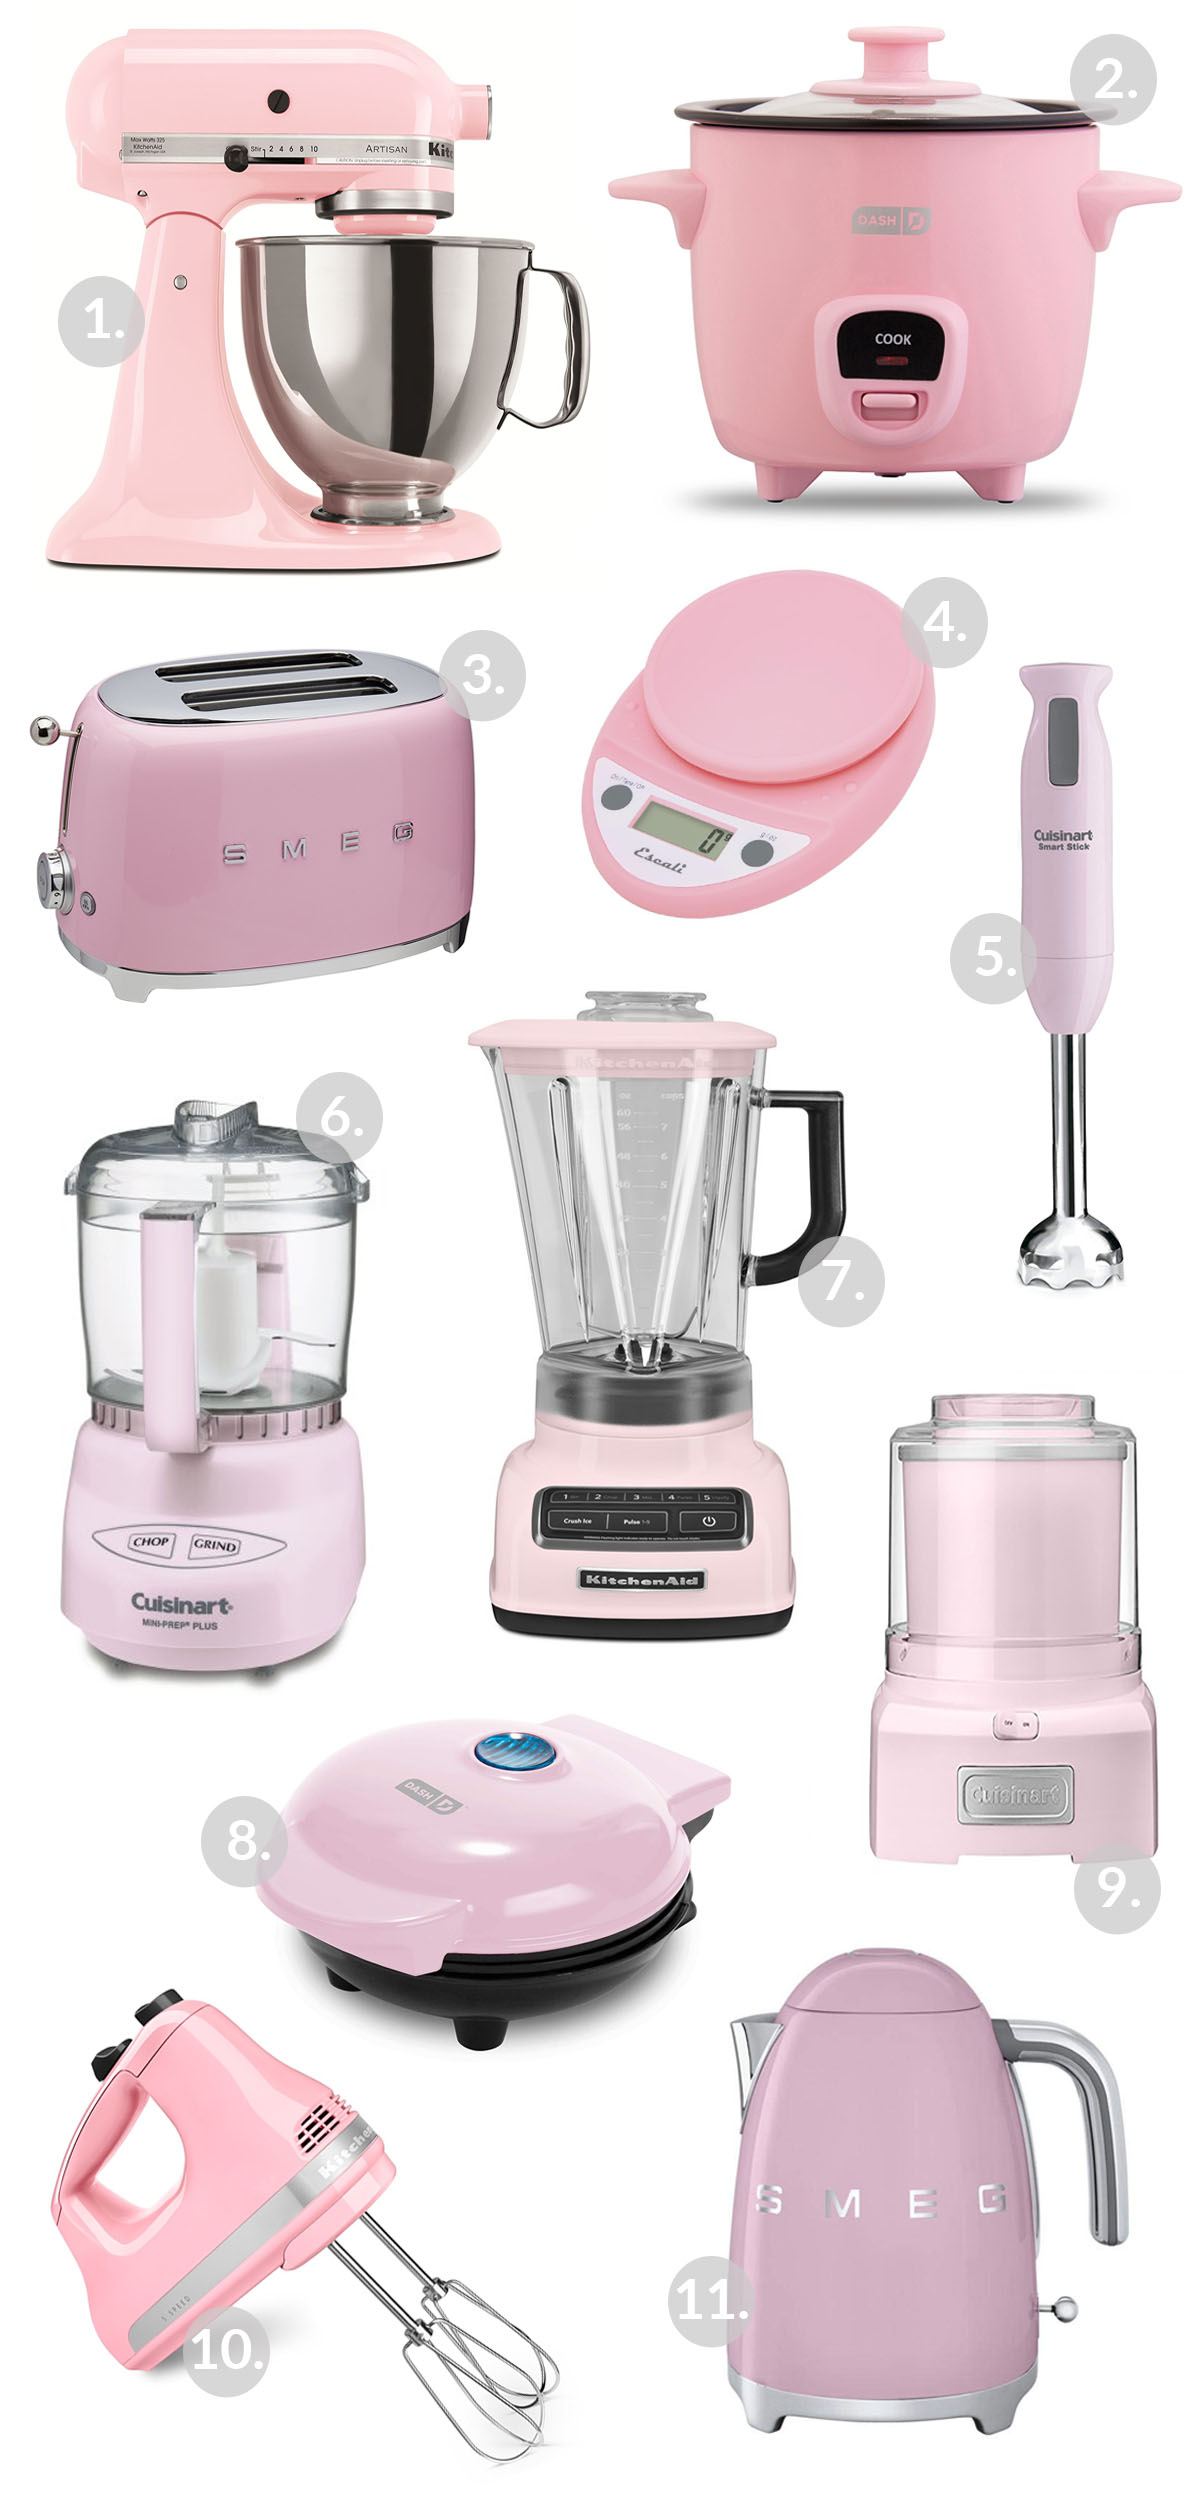 Pink Kitchen Appliances! Great for accessorizing a kitchen!